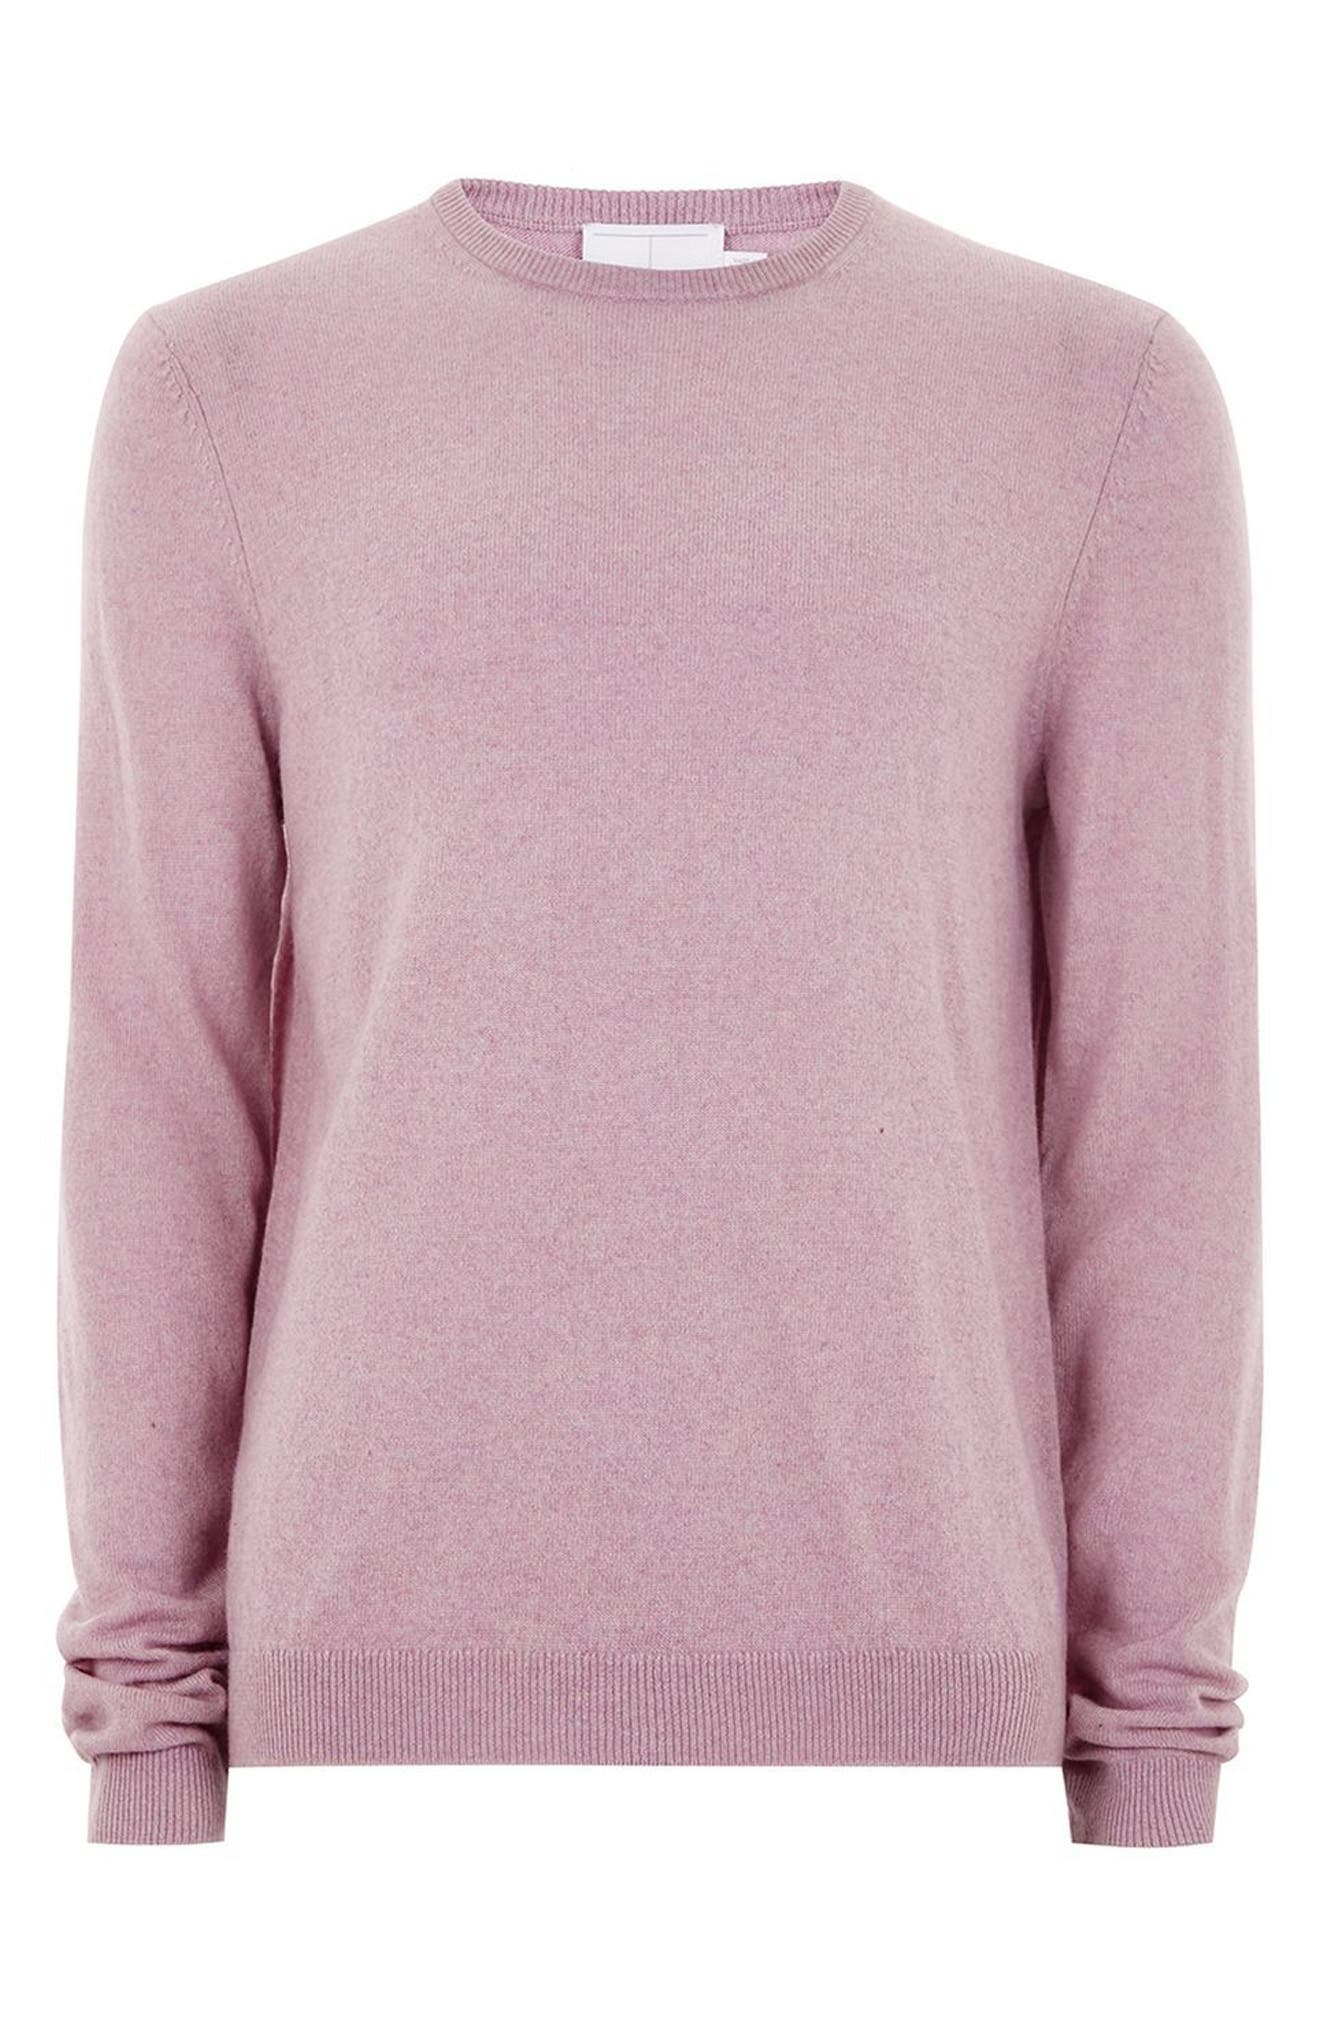 Crewneck Sweater,                             Alternate thumbnail 4, color,                             Pink